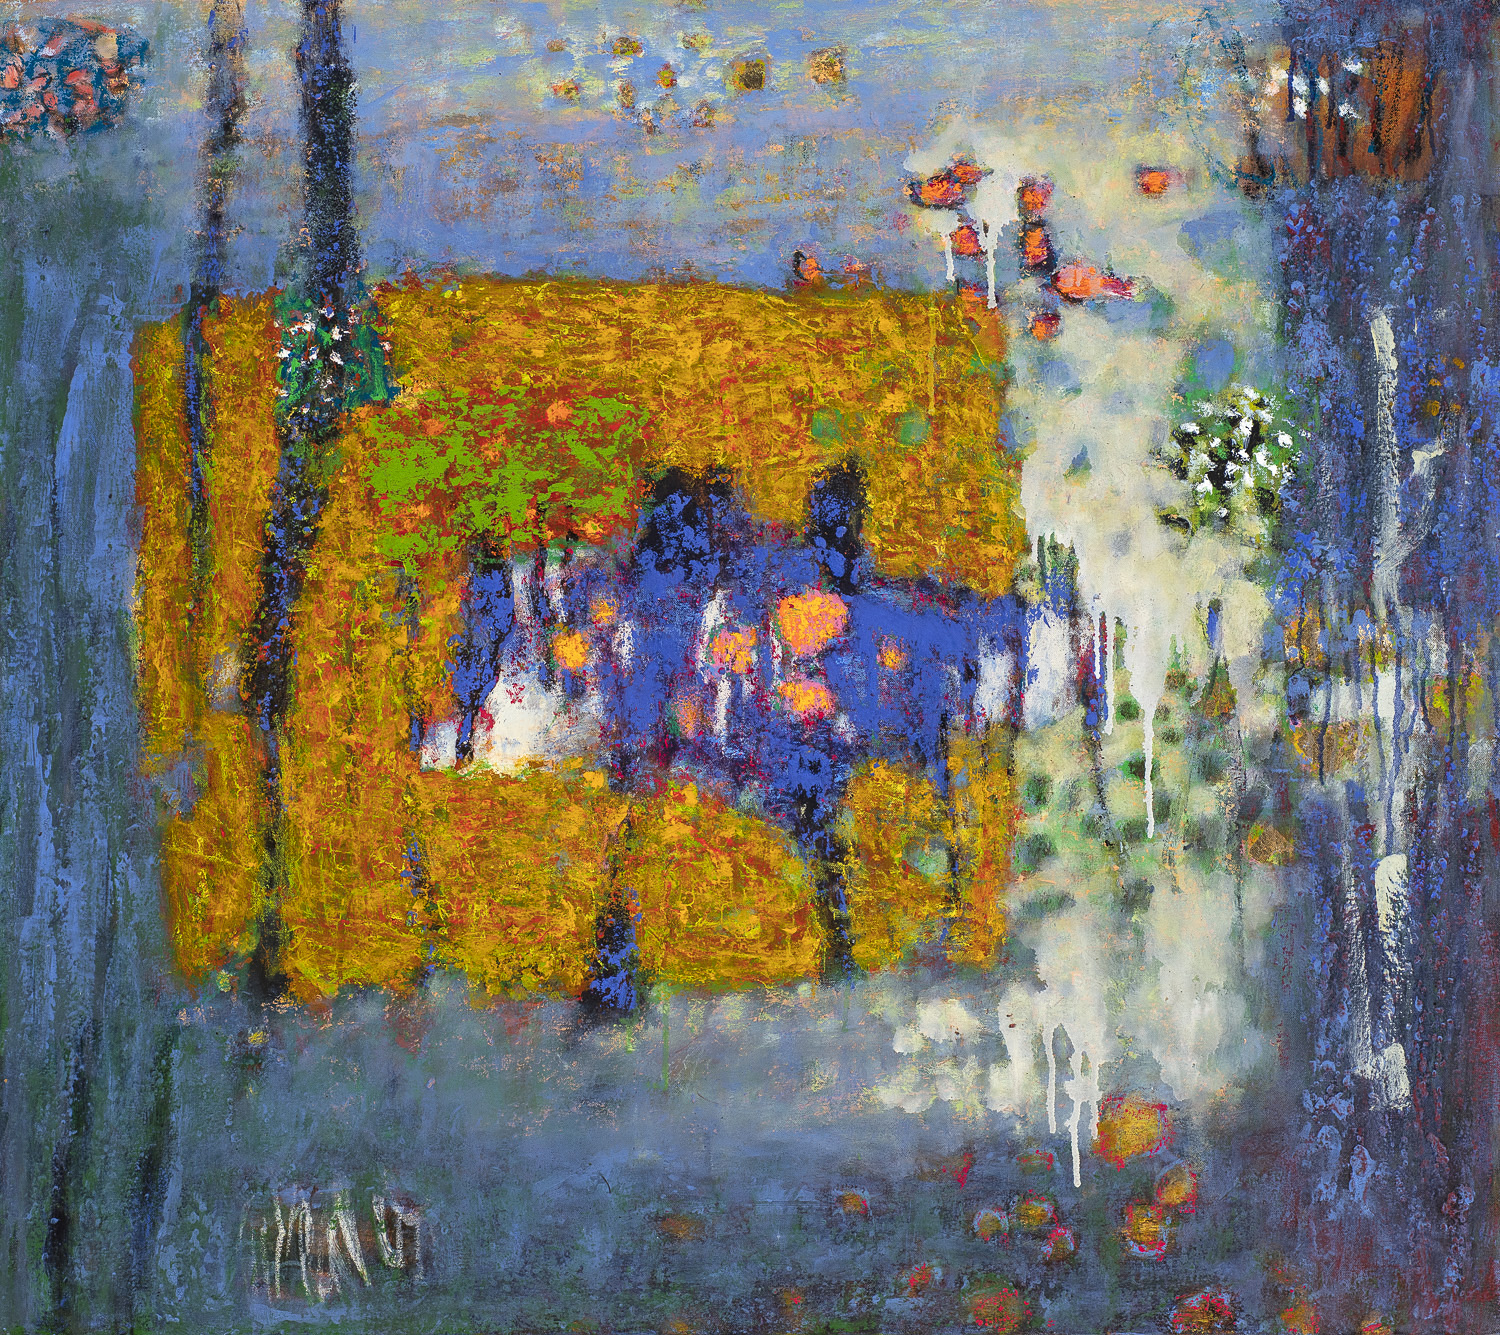 Just Being There  | oil on canvas | 32 x 36"